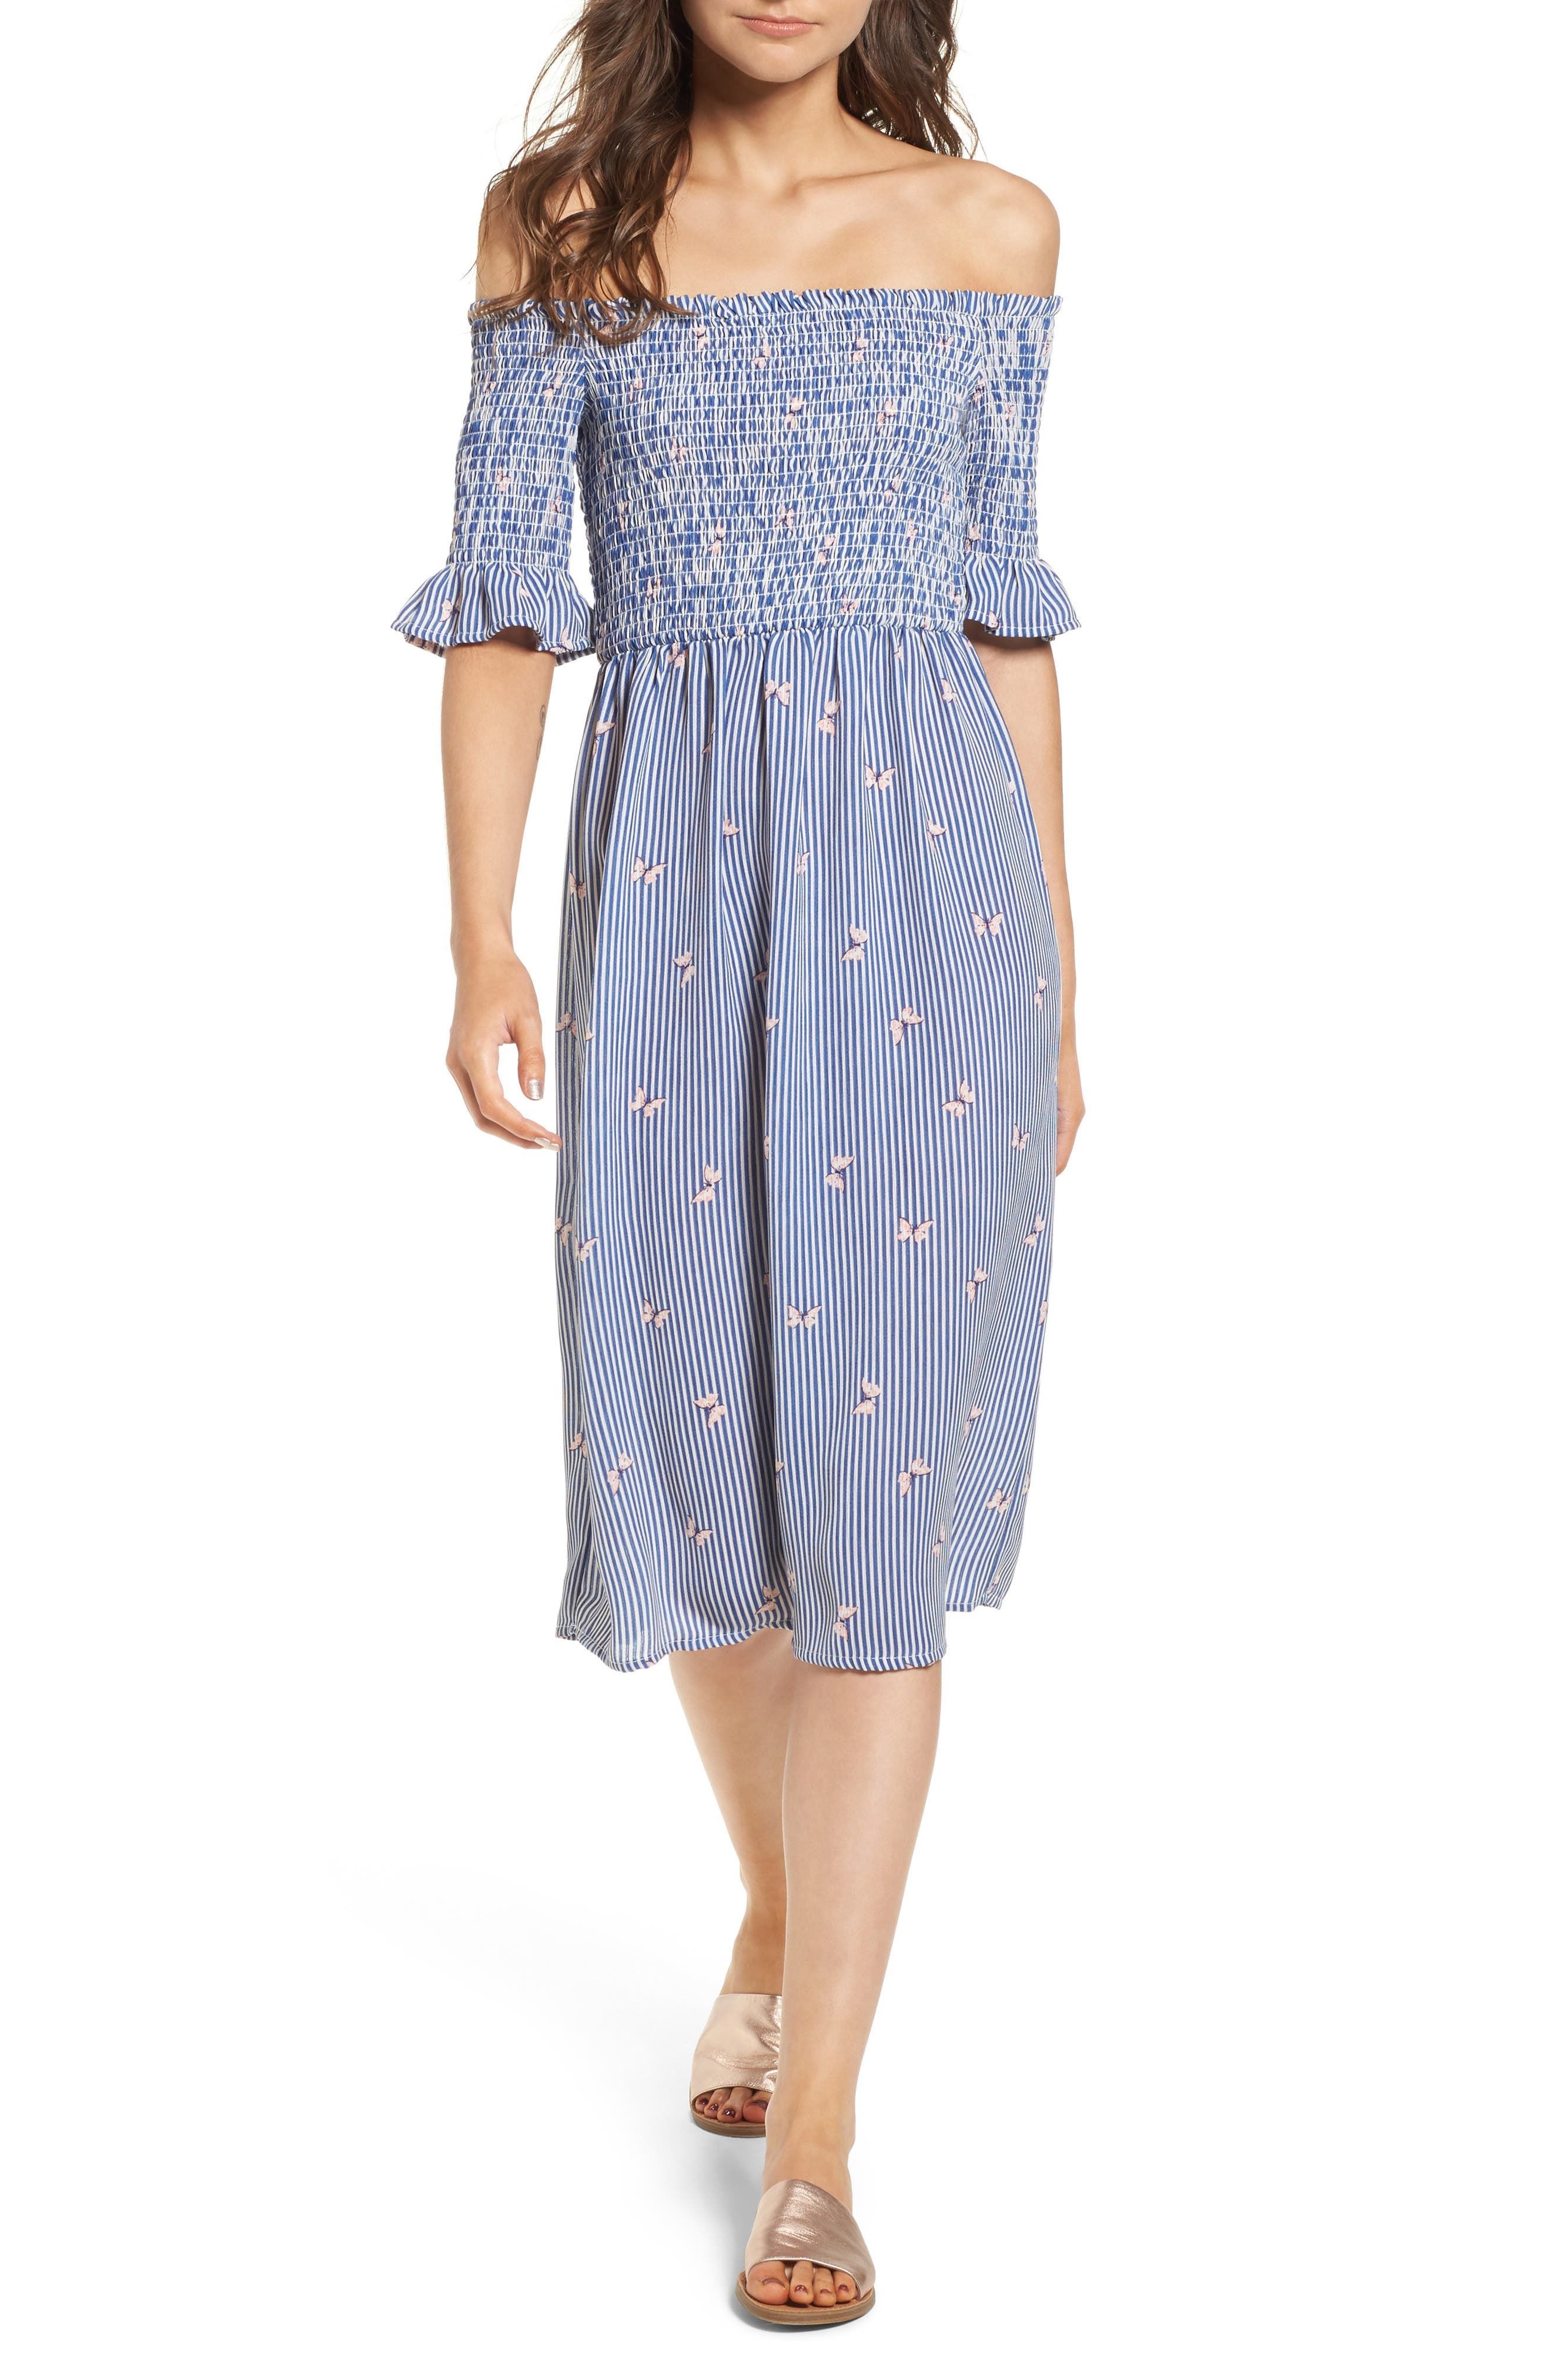 Smocked Midi Dress,                         Main,                         color, Off White/ Blue